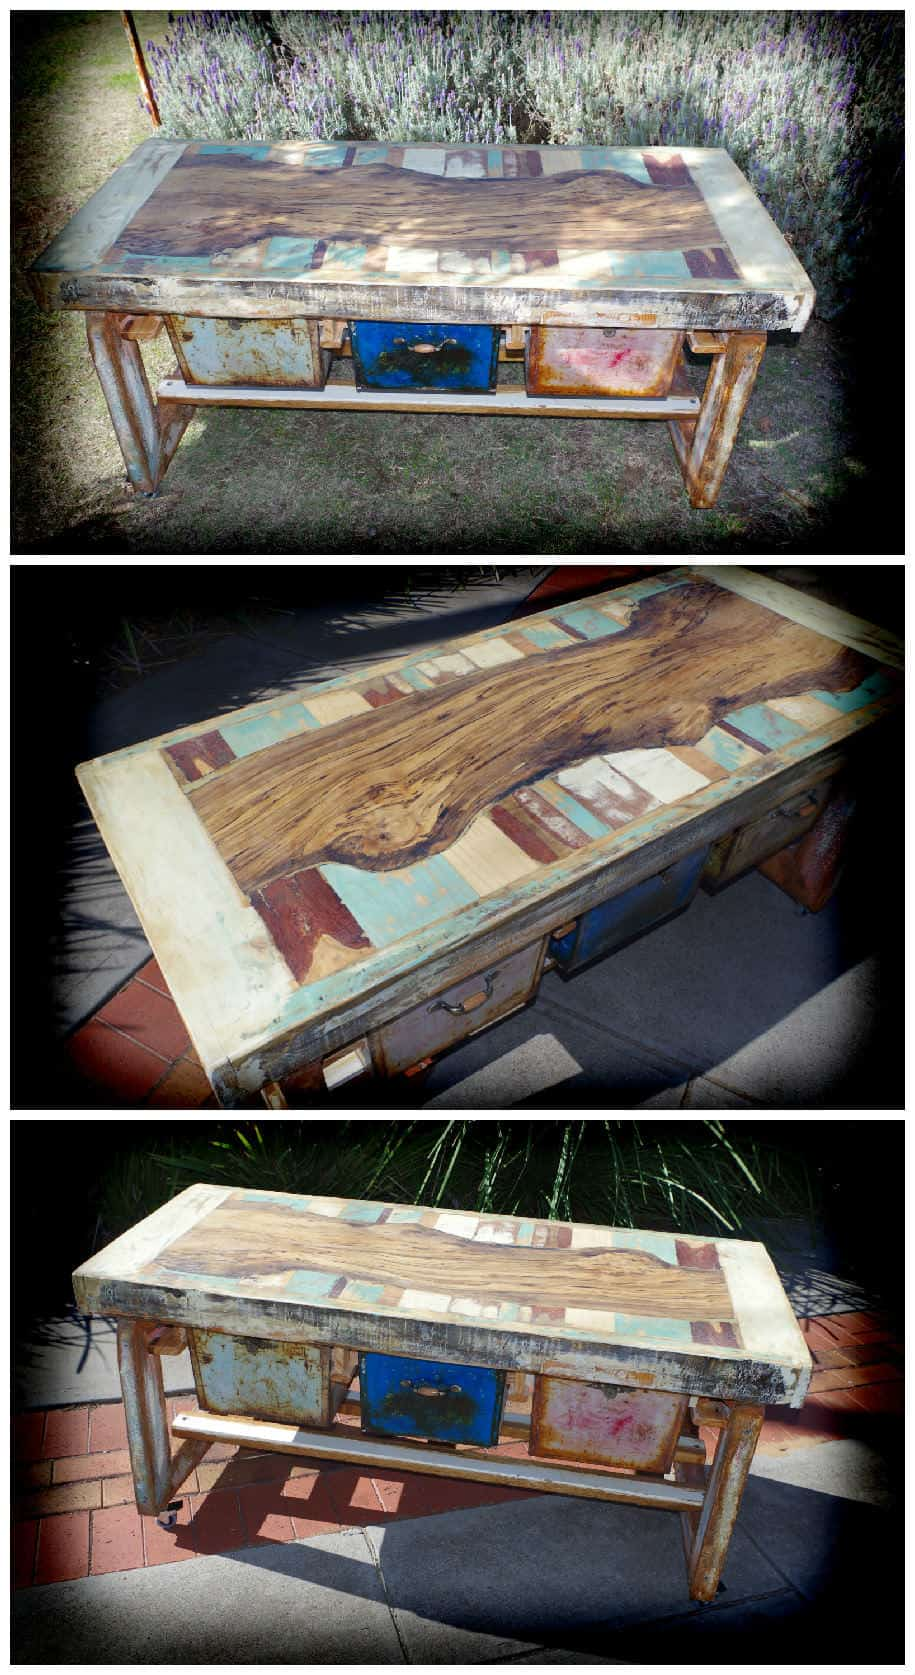 Pallet, Timber, Rusty Boxes, And Paint From The Bin To Make A Great Table • Recyclart